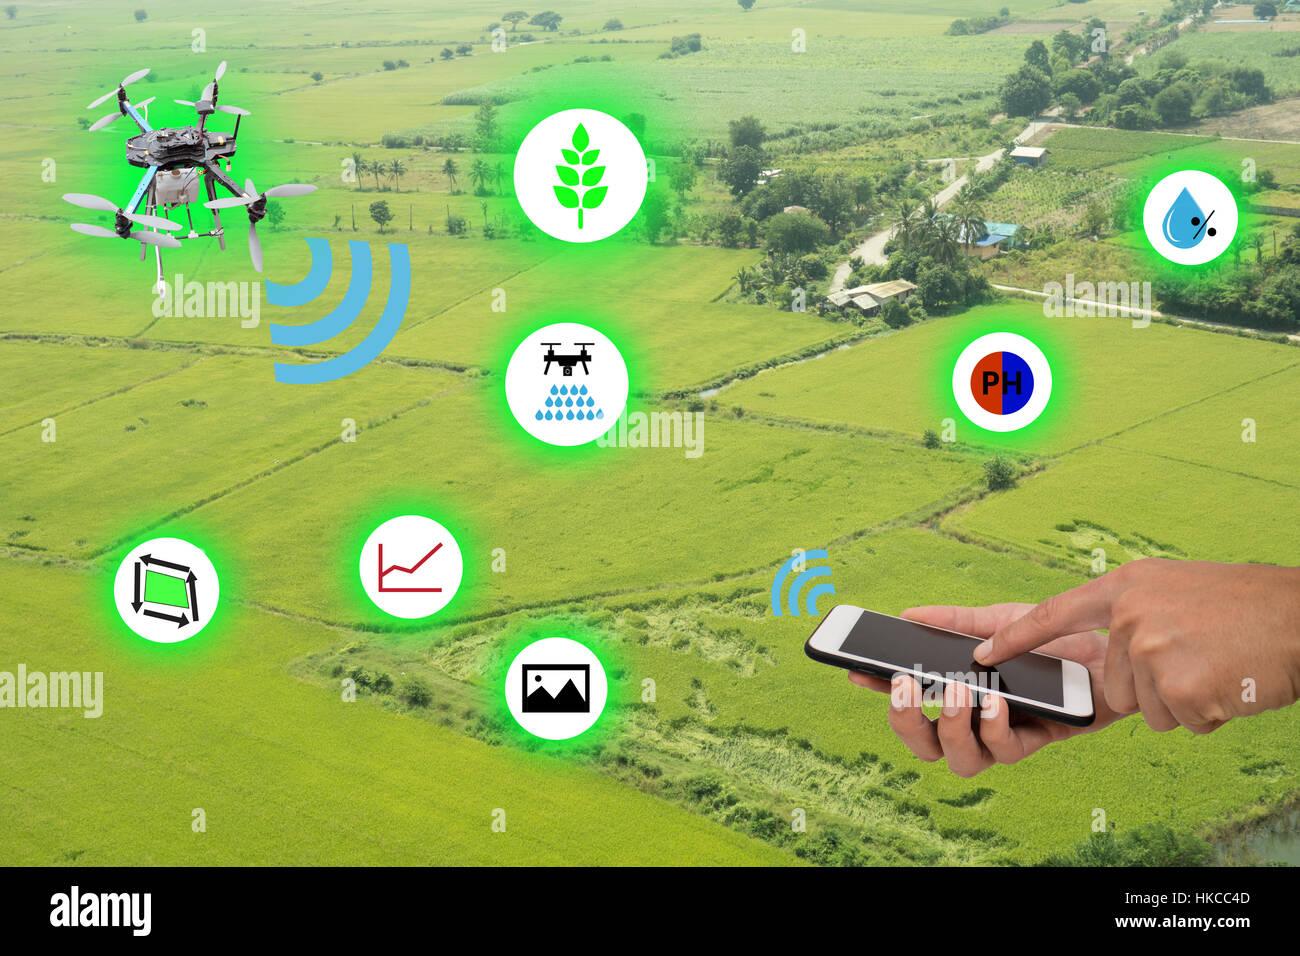 drone controlled by phone with Stock Photo Inter  Of Thingsindustrial Agriculture And Smart Farming Conceptfarmer 132423997 on Stock Photo Inter  Of Thingsindustrial Agriculture And Smart Farming Conceptfarmer 132423997 as well Pandora Bumps Price Ad Free Streaming Service as well Best Drone With Camera In 2015 likewise Forest moreover Selfly Flying Phone Case Drone Camera.